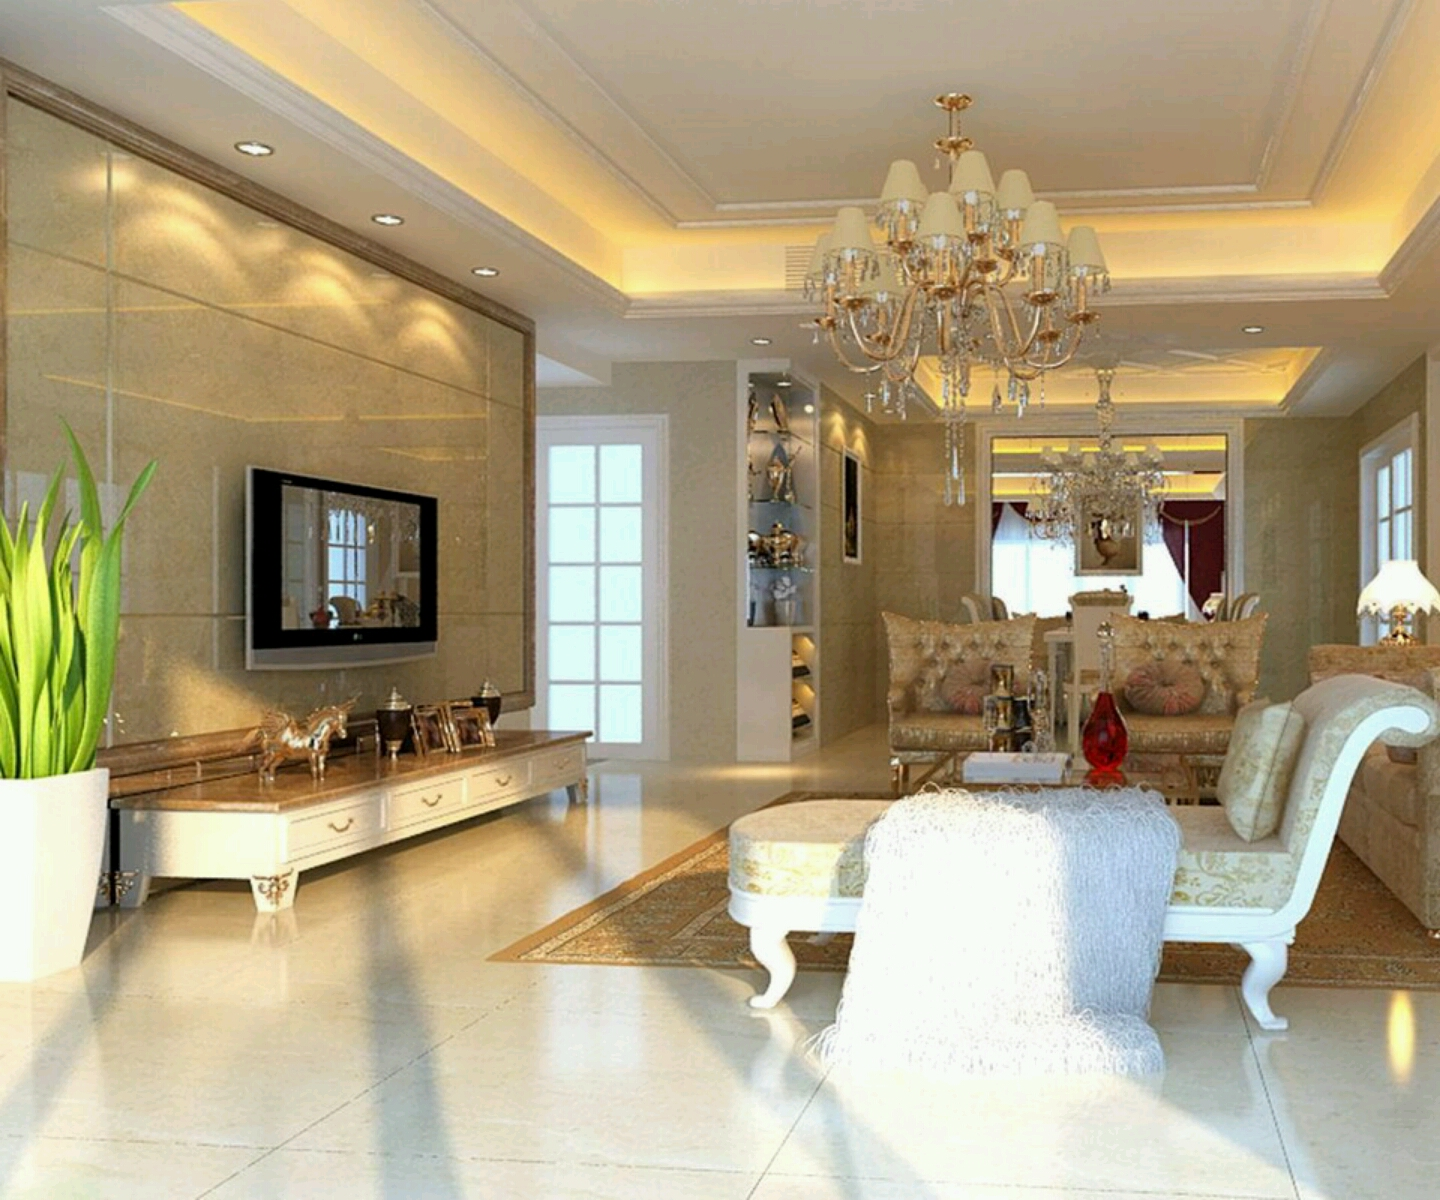 New home designs latest luxury homes interior decoration for Home inside decoration